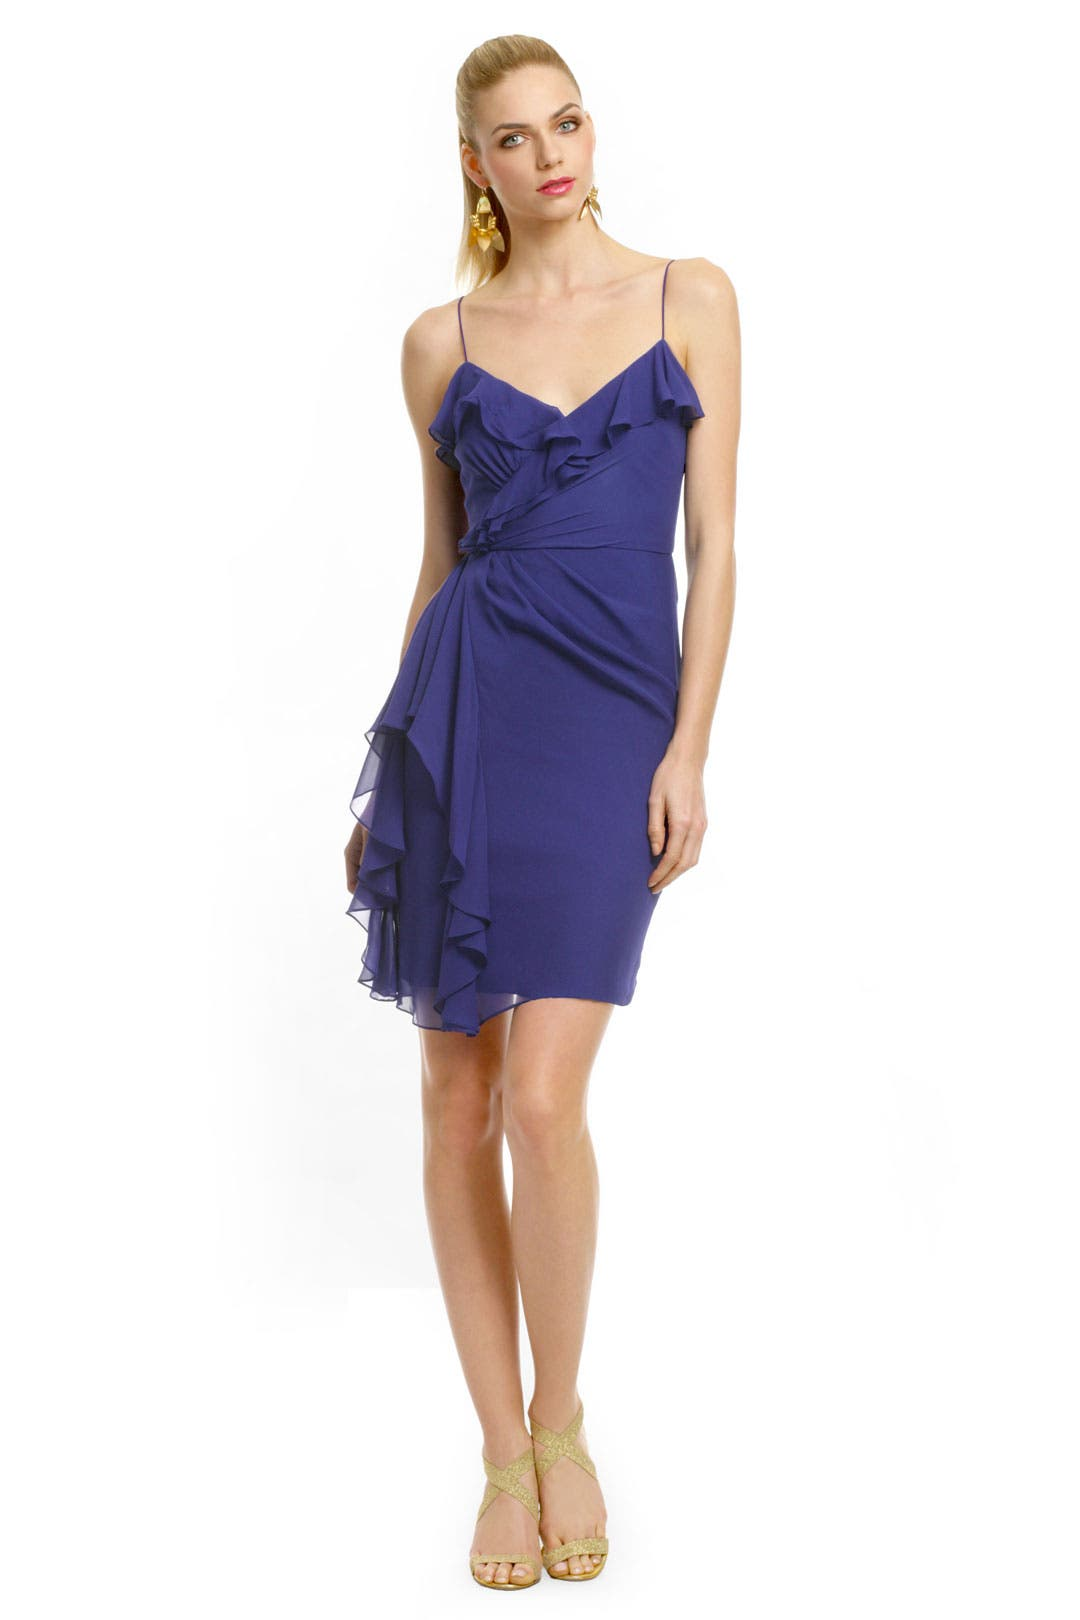 Waterfall of Love Dress by Badgley Mischka